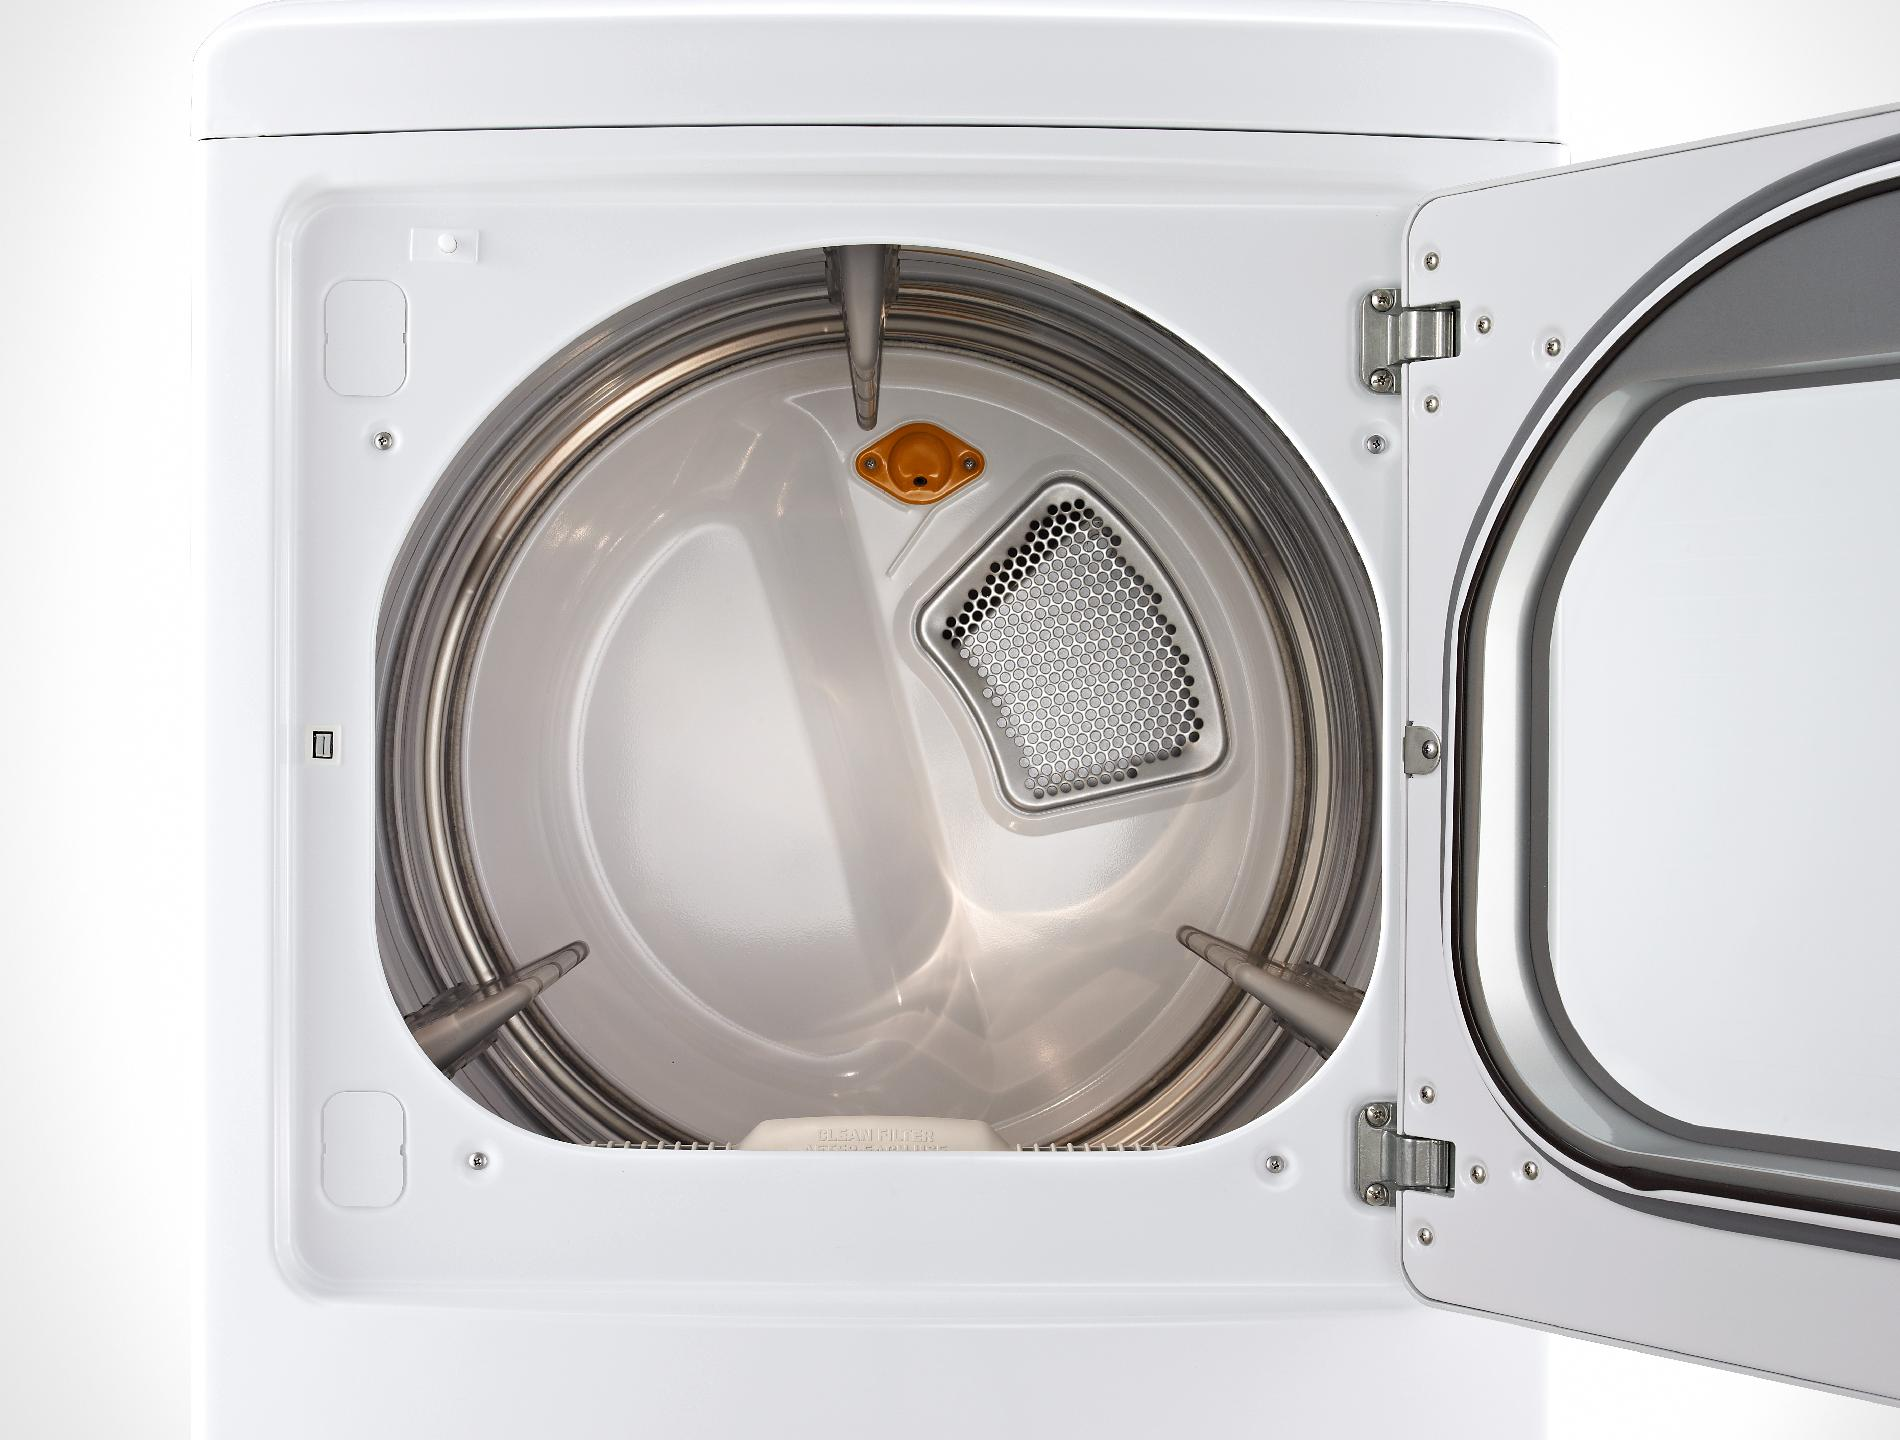 LG DLGX5681W 7.3 cu. ft. Gas Dryer w/ SteamSanitary™ - White